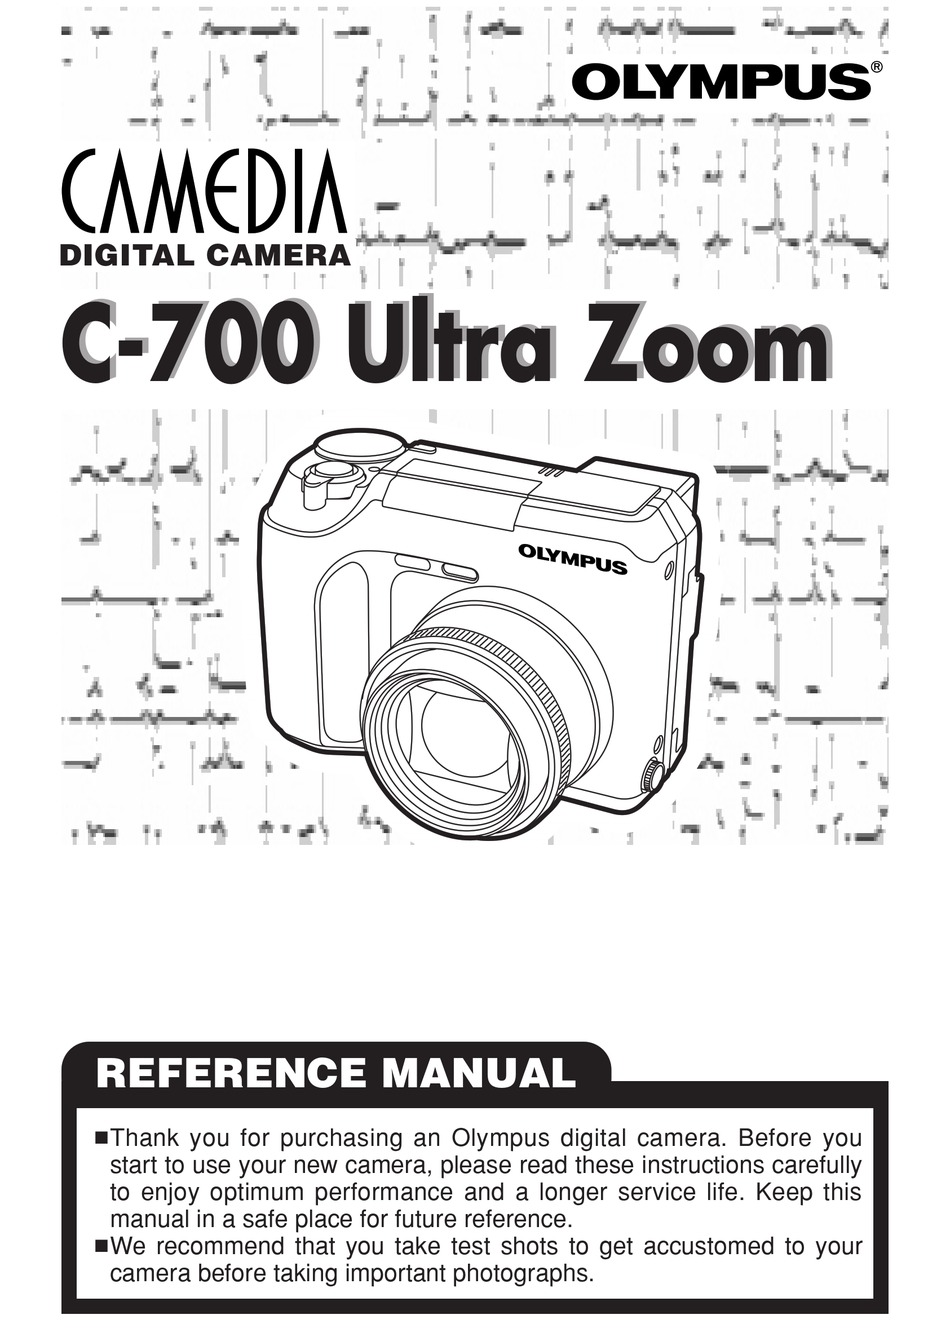 OLYMPUS CAMEDIA C-700 ULTRA ZOOM REFERENCE MANUAL Pdf